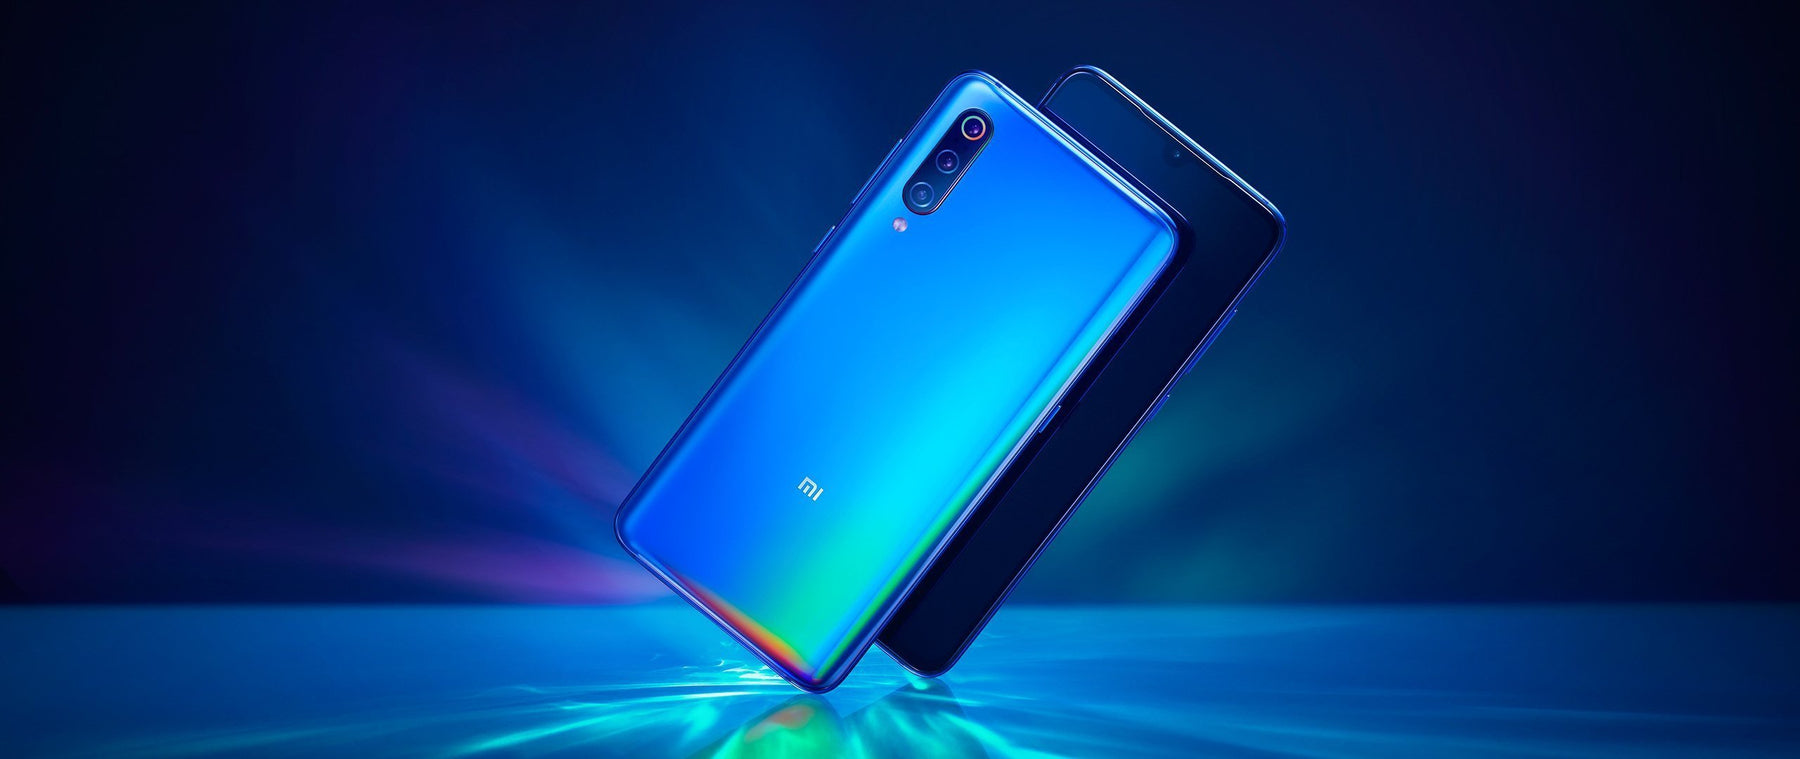 Xiaomi Mi 9: So Much Smartphone Goodness for So Much Less